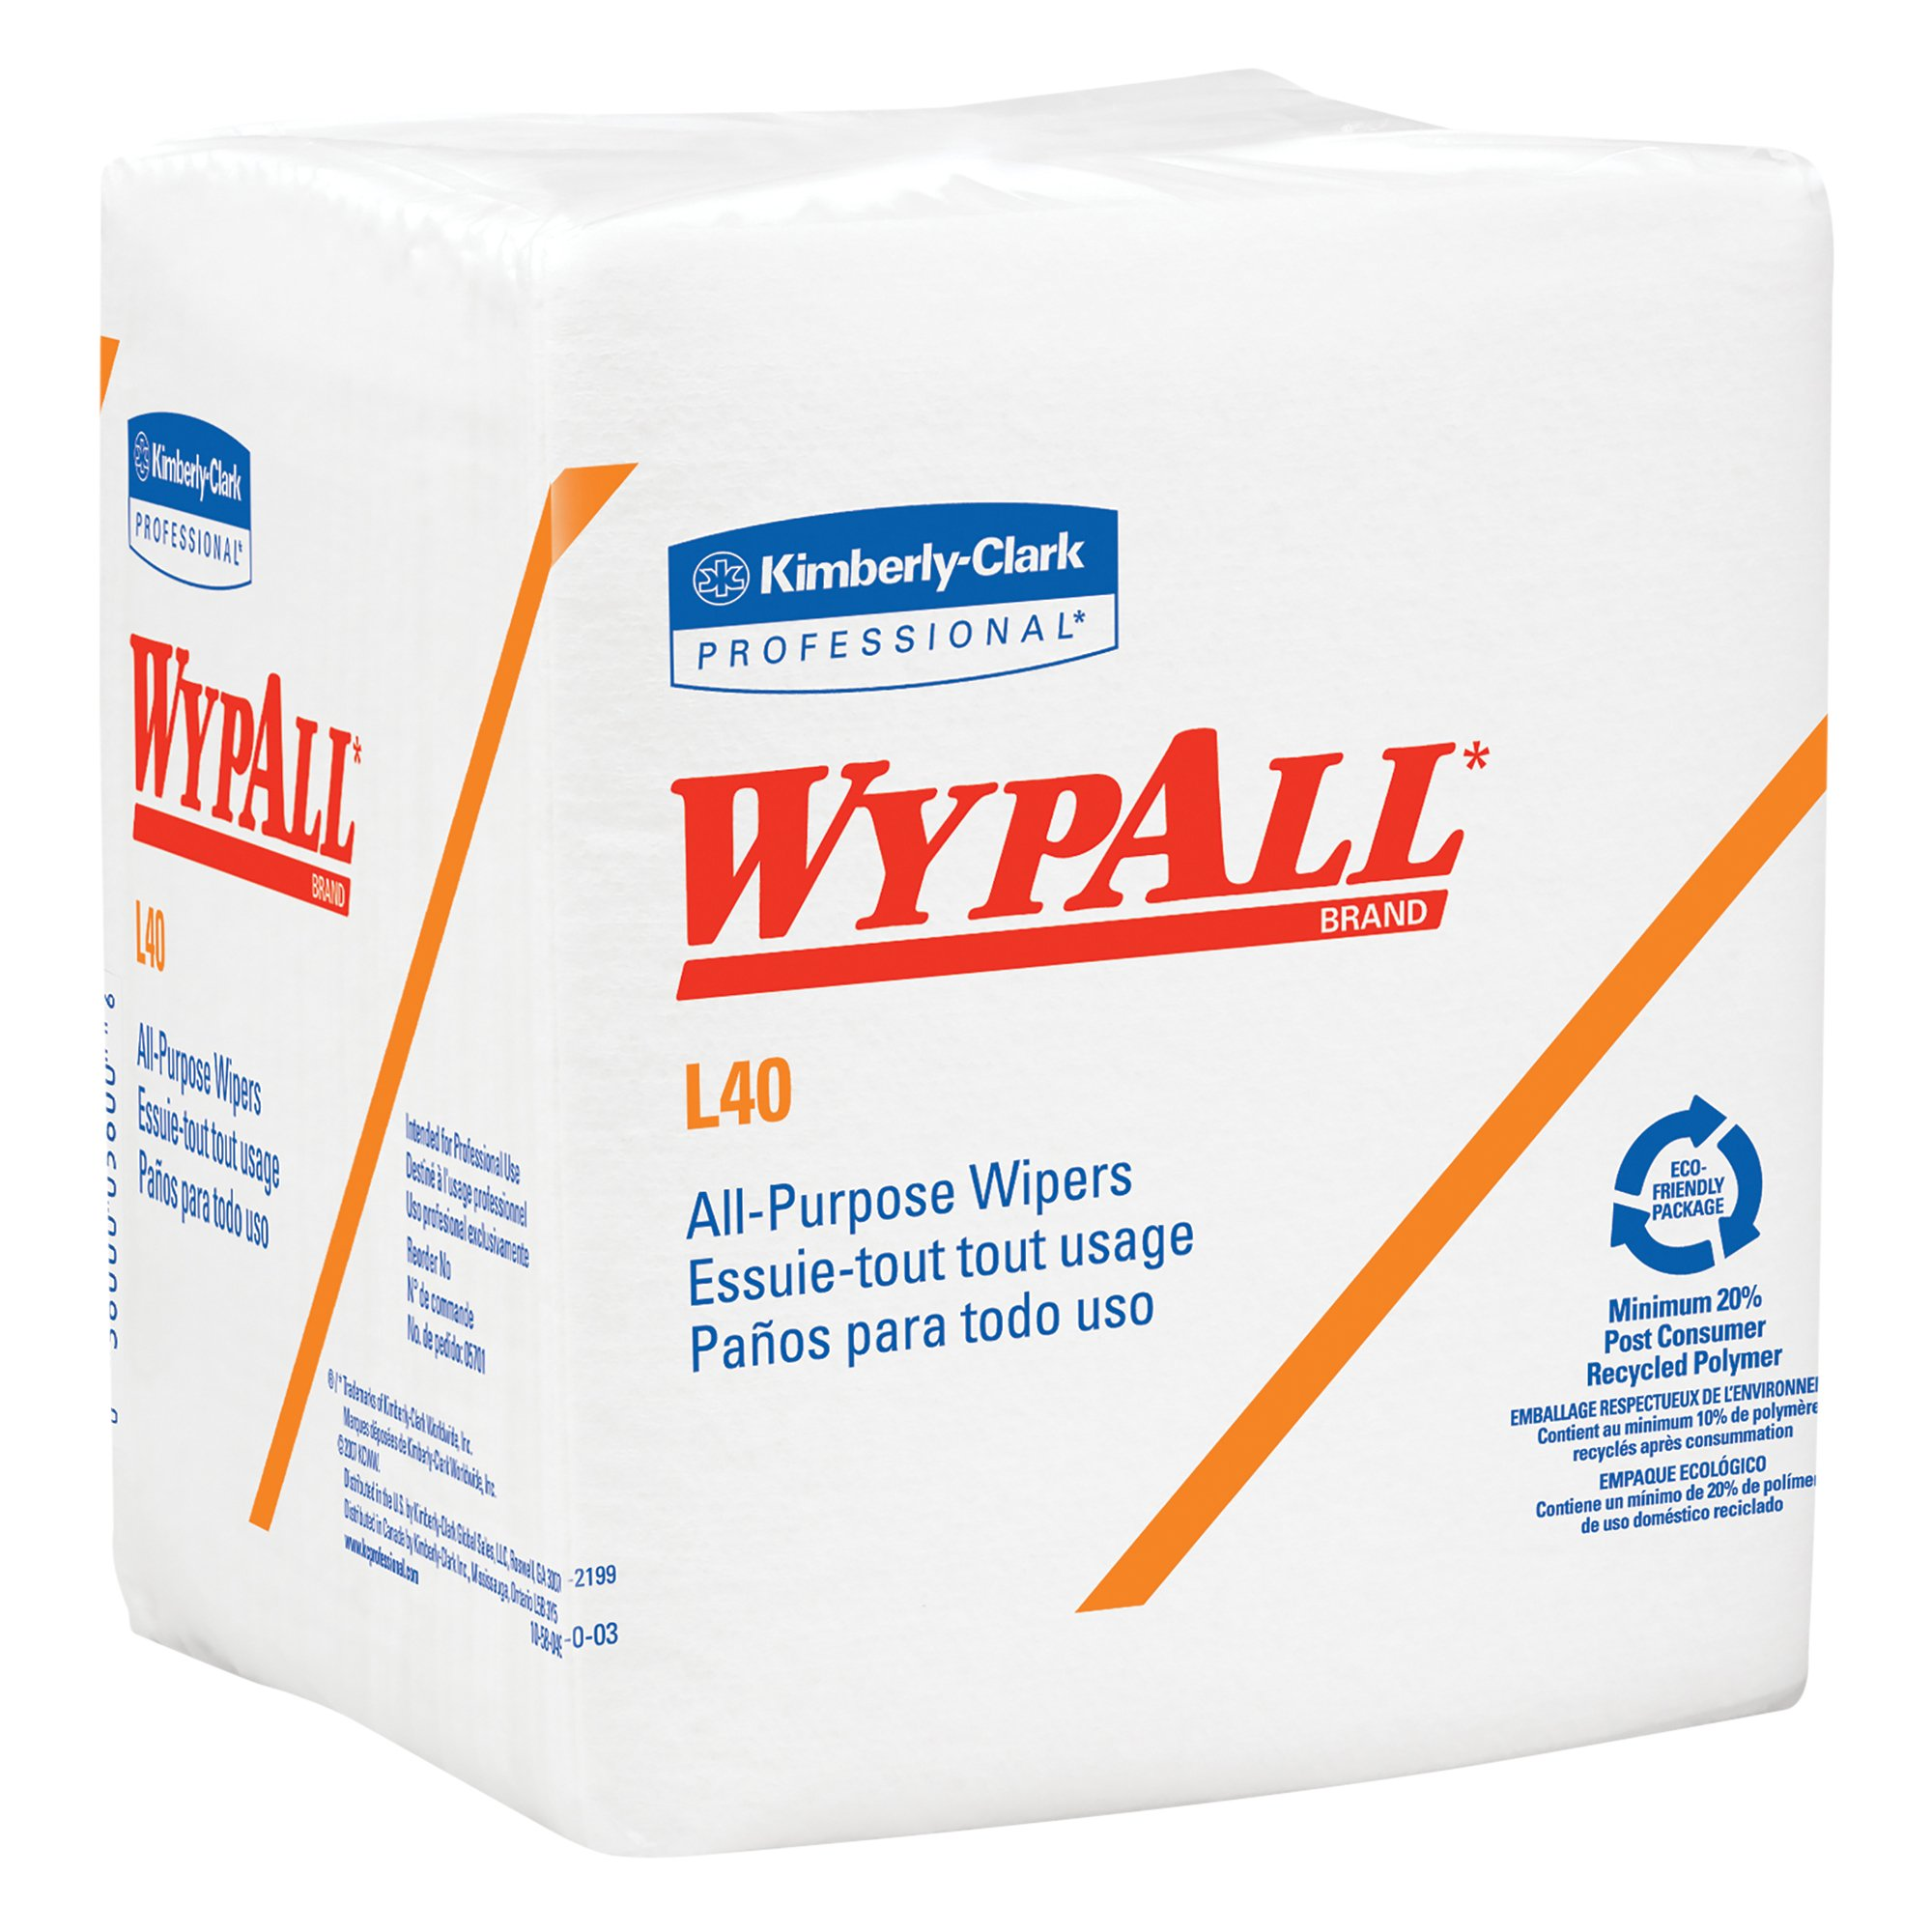 WypAll L40 Disposable Cleaning and Drying Towels (05600), Limited Use Towels, White, 12 Packs per Case, 56 Sheets per Pack, 672 Sheets Total